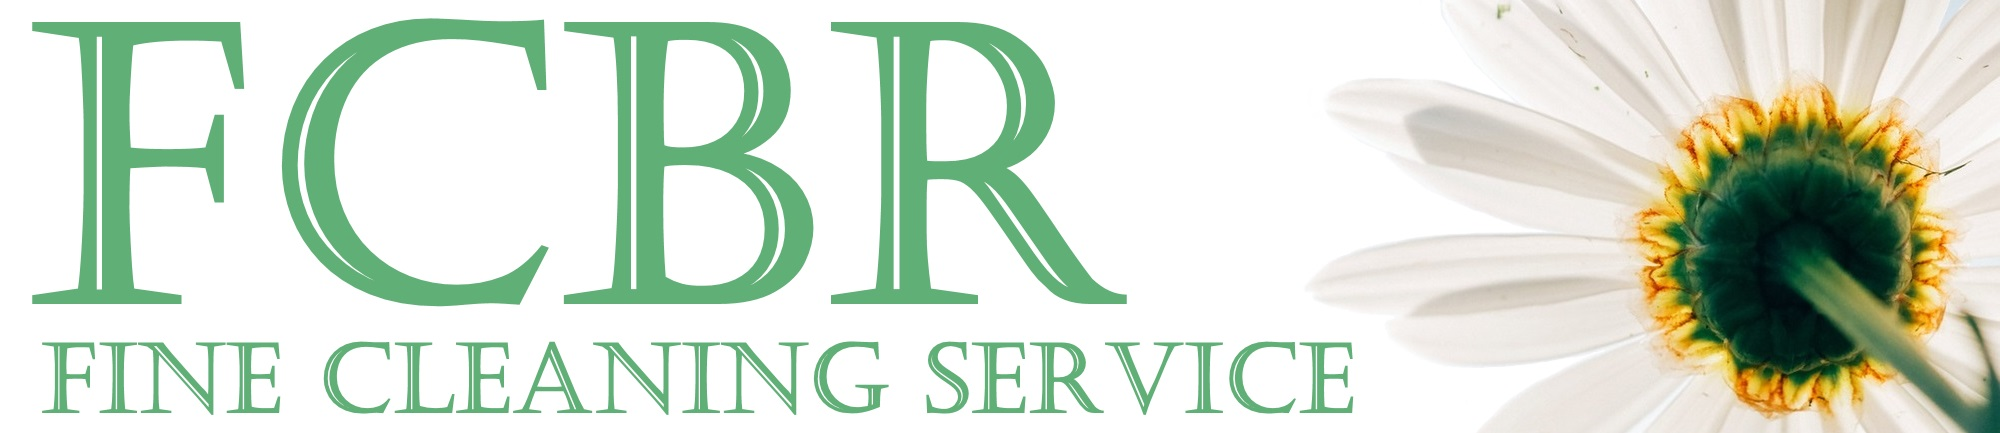 Fine Cleaning Service